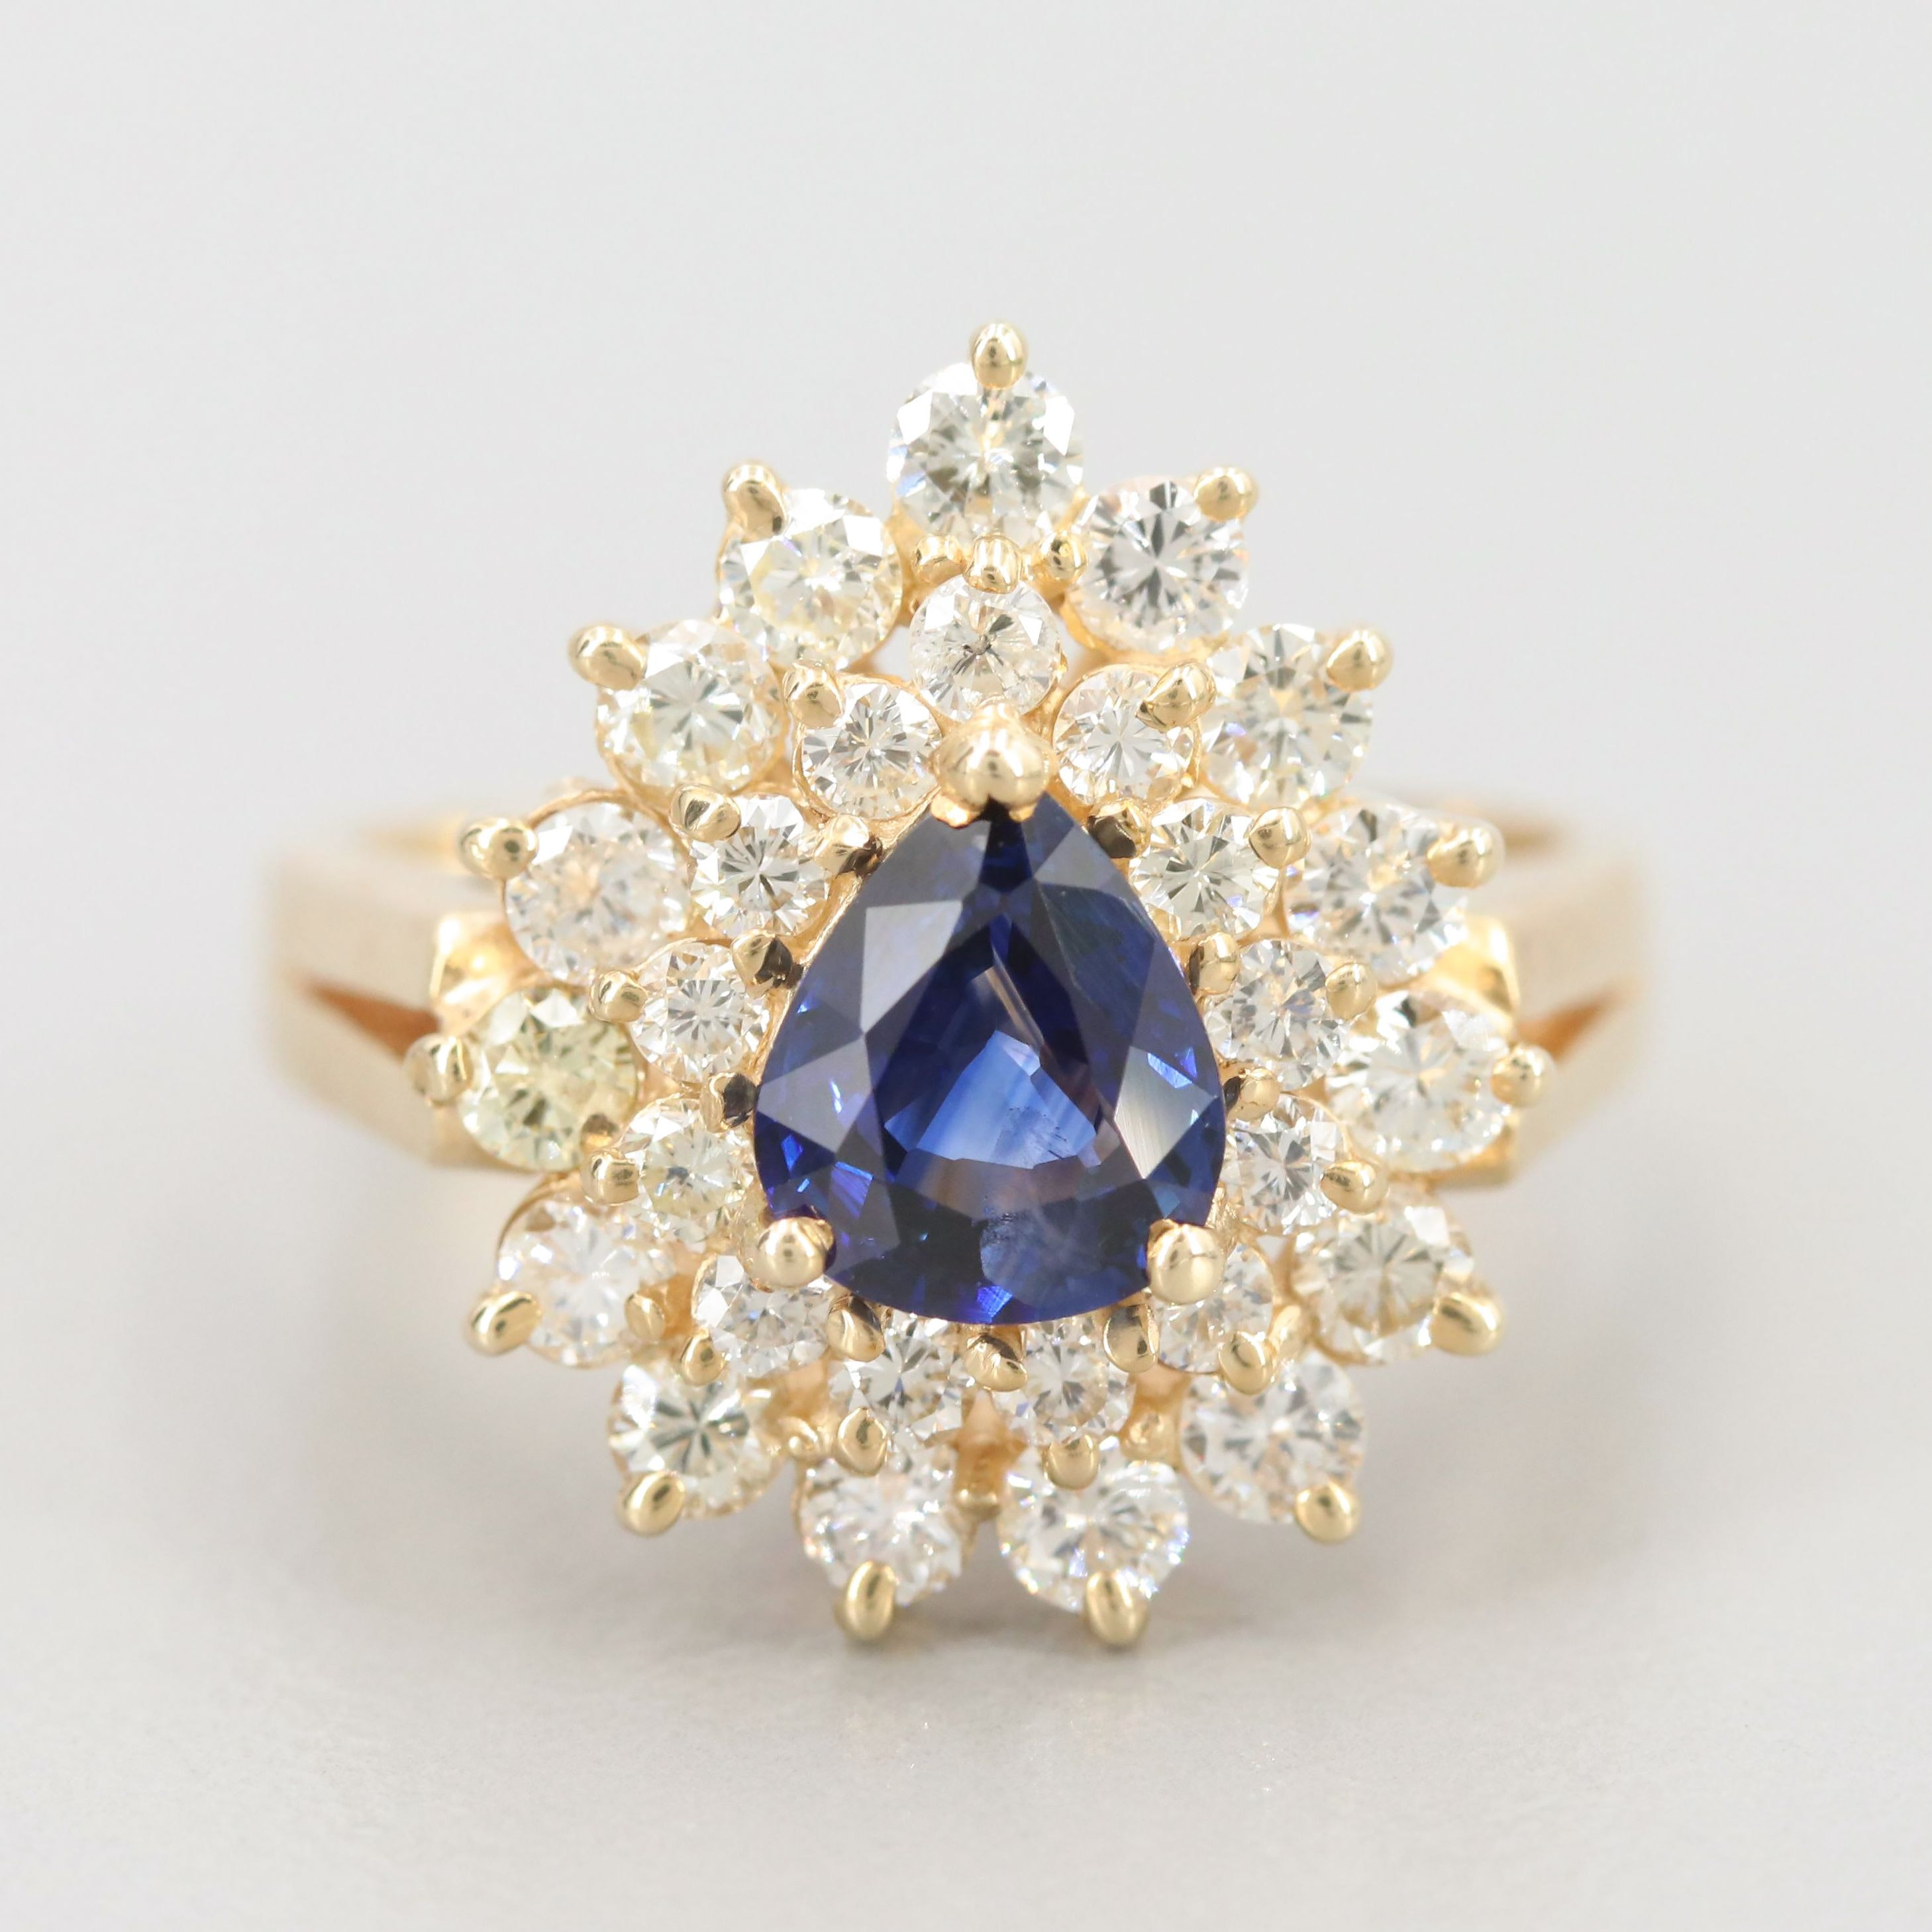 14K Yellow Gold Sapphire and 1.05 CTW Diamond Cluster Ring